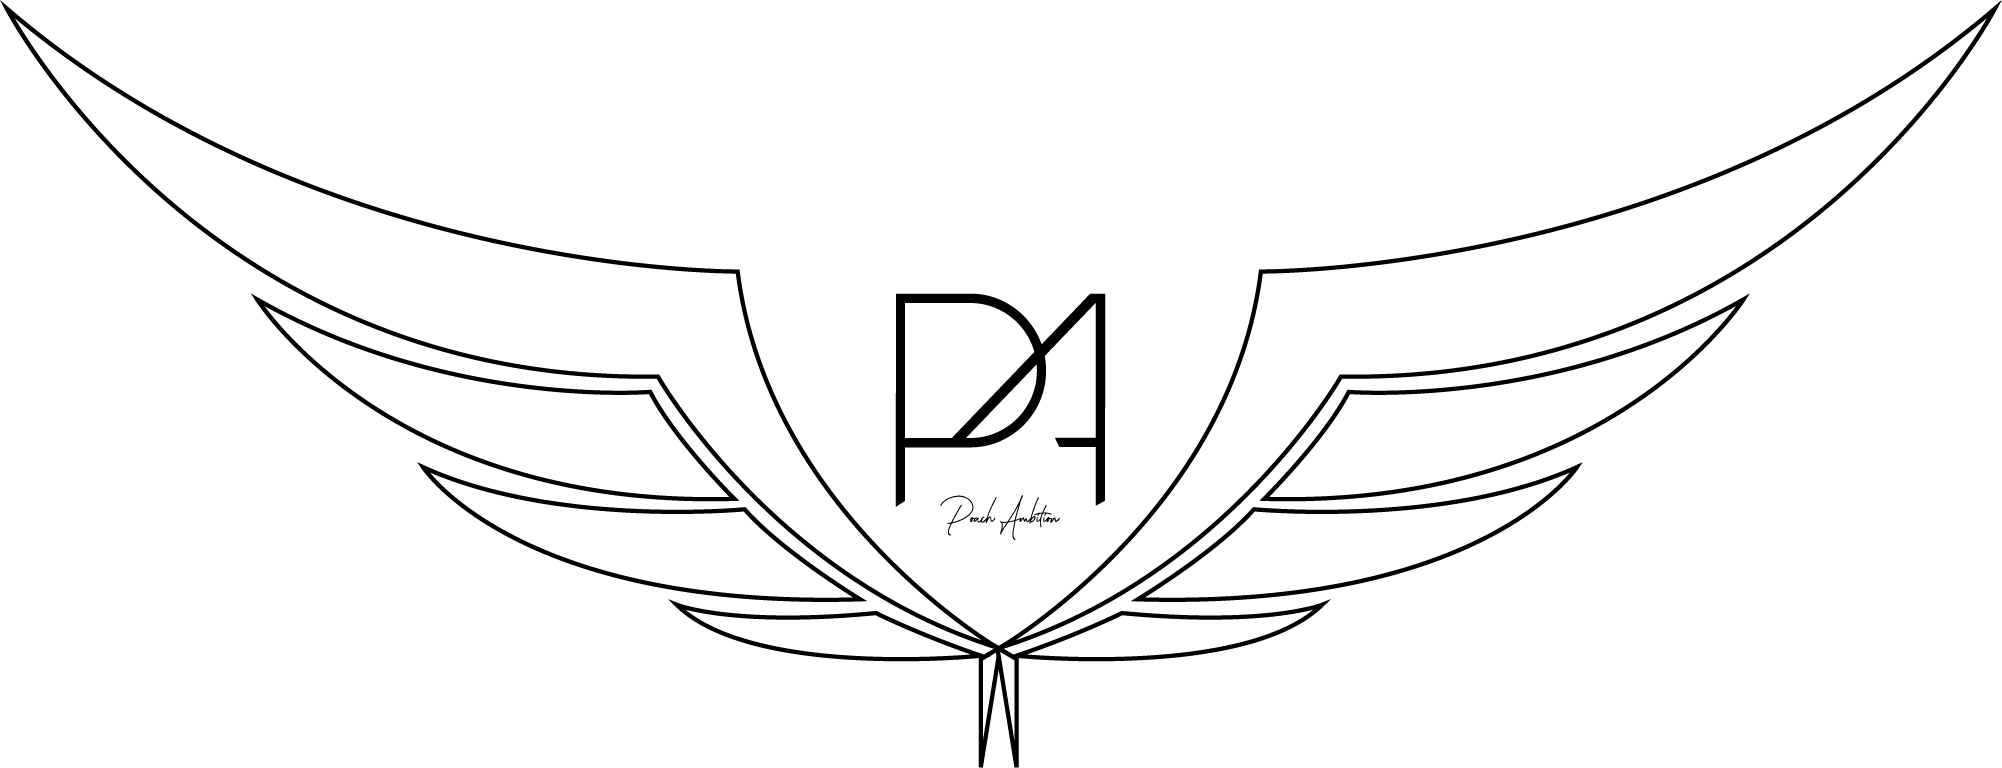 poach ambition wings with small logo.jpg